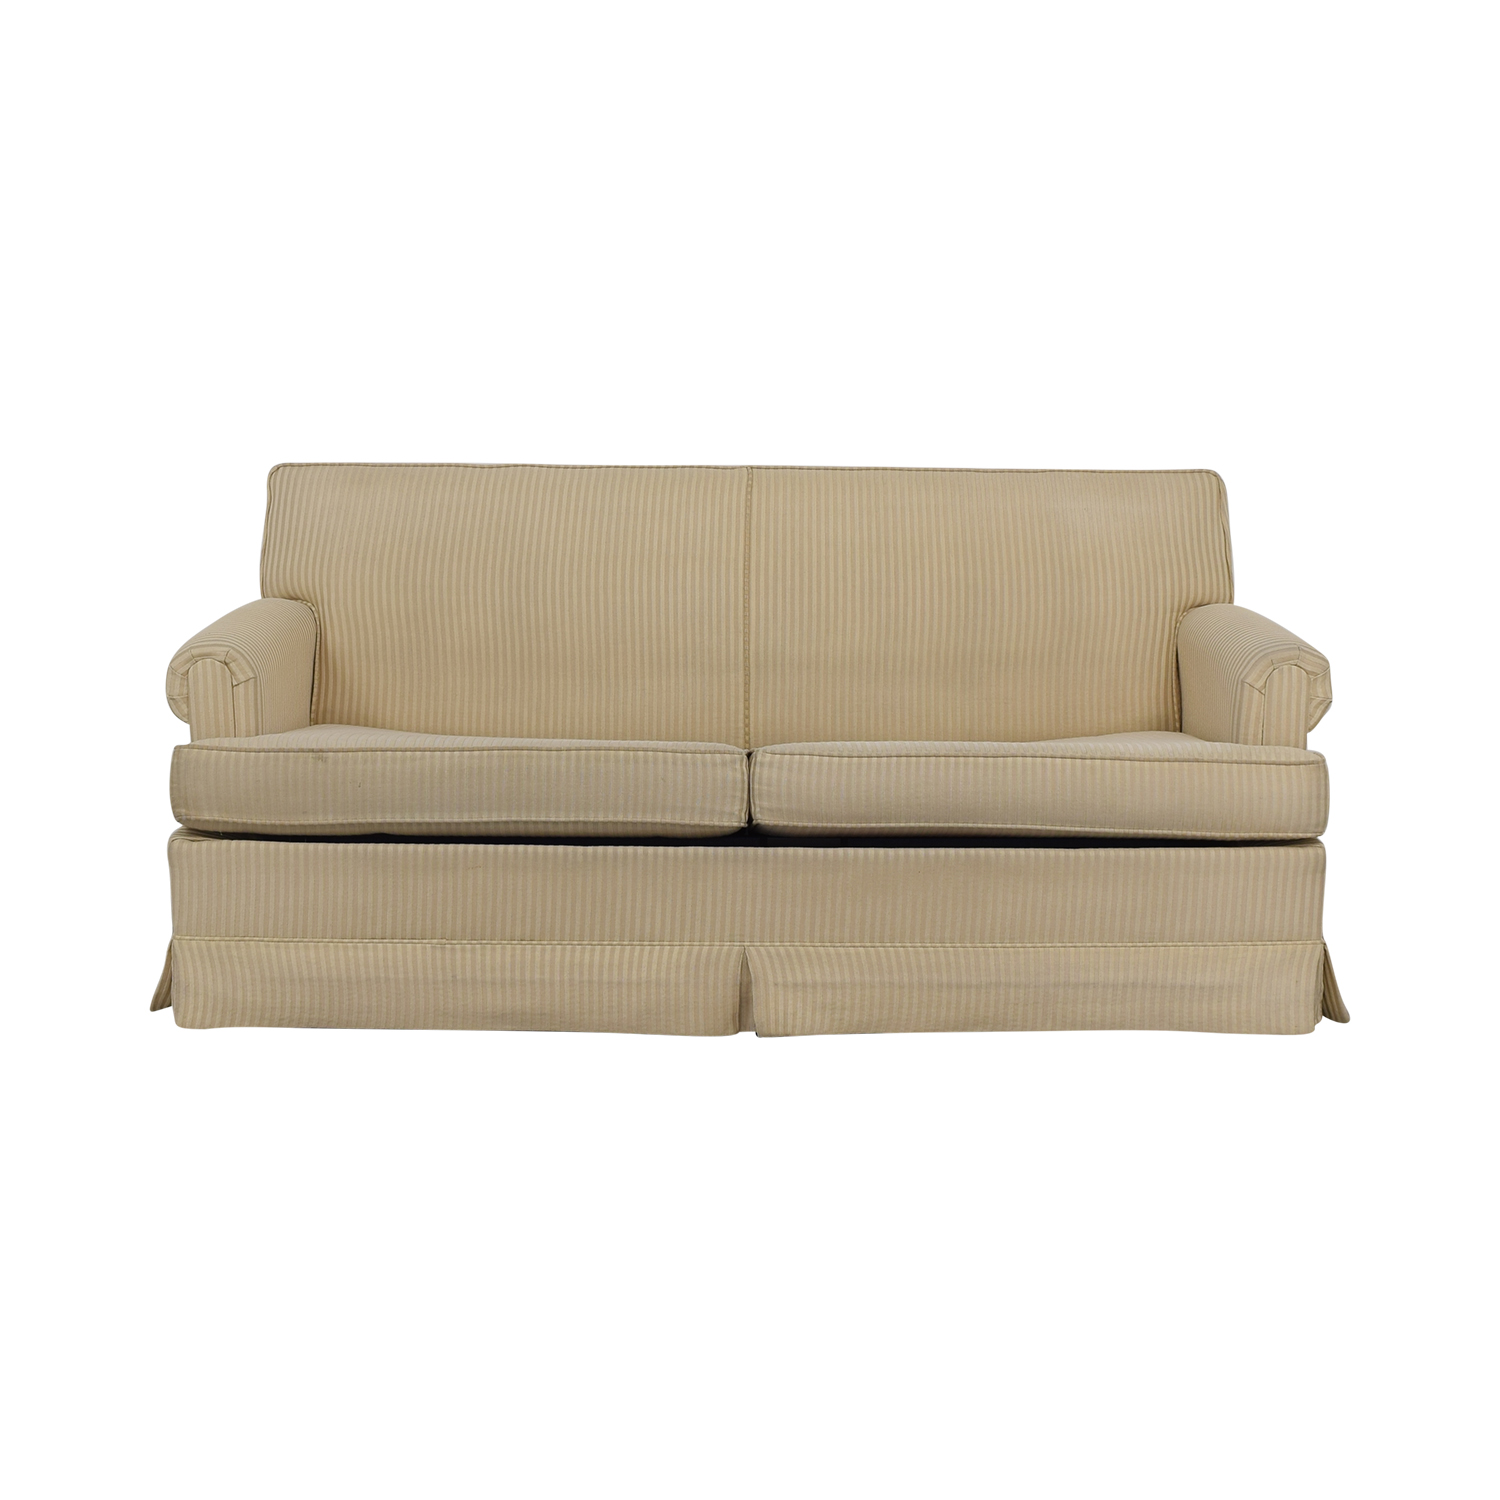 Stearns & Foster Stearns & Foster Two-Cushion Sleeper Sofa discount